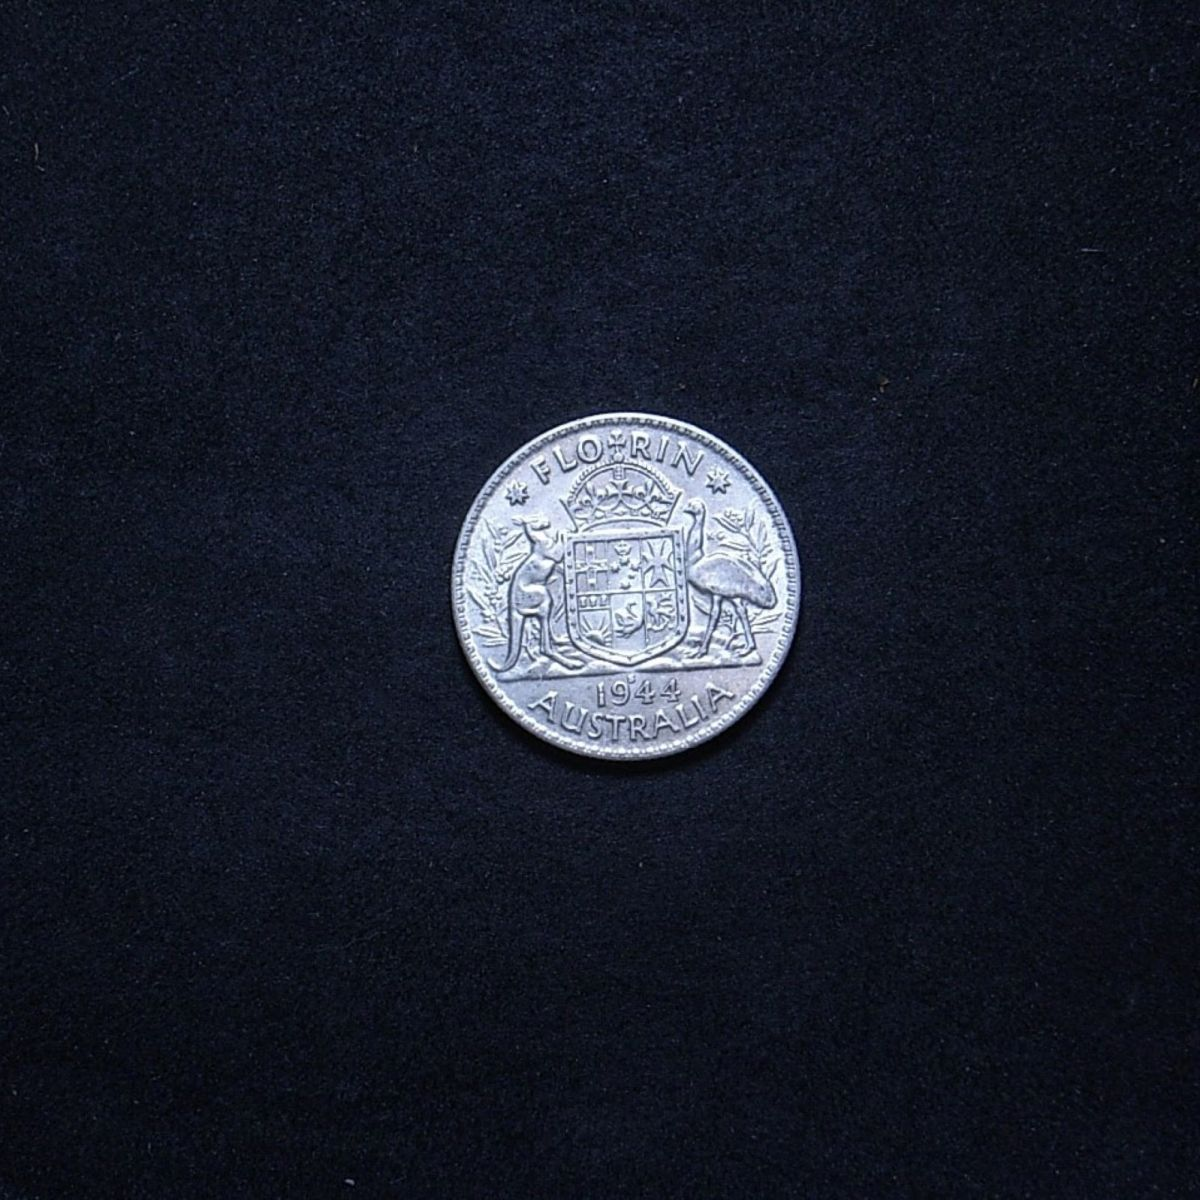 Aus Florin 1944s reverse showing overall appearance